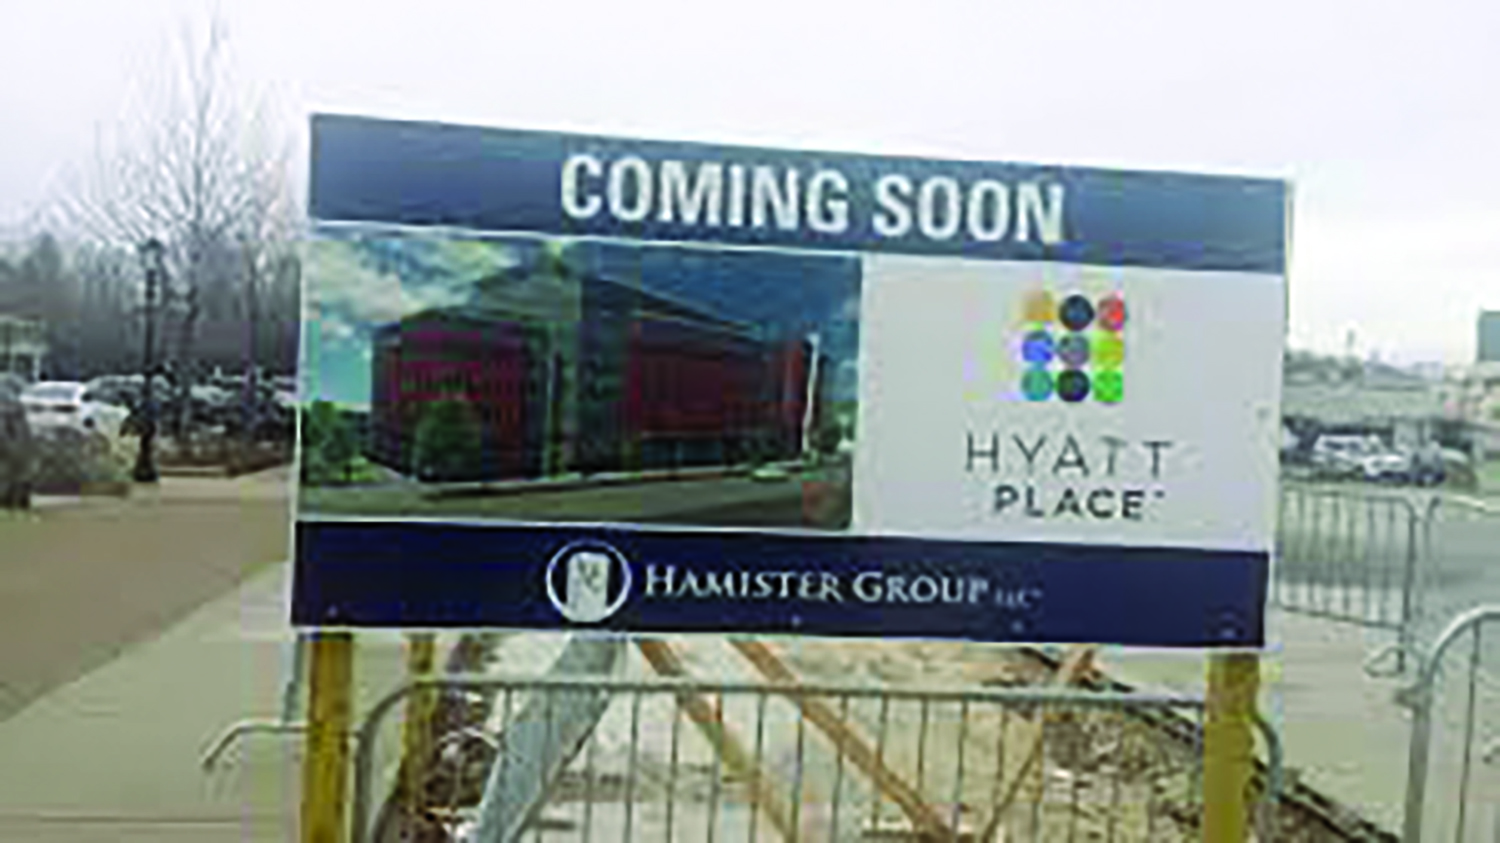 For years Hamister has promised to start building his ever cheaper hotel.